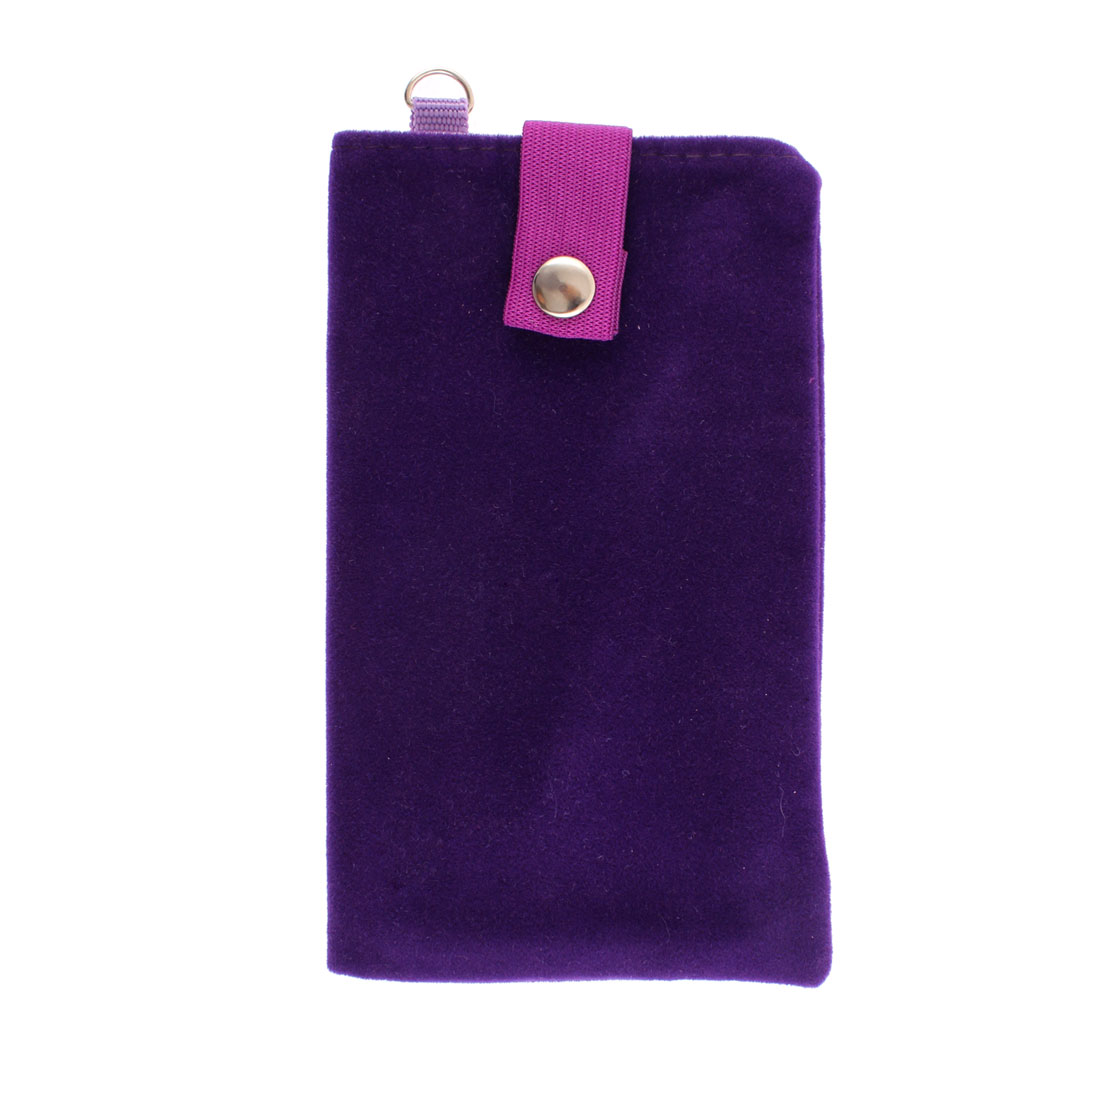 Double Layer Magnetic Clasp Button Cell Phone Pouch Sleeve Bag Dark Purple